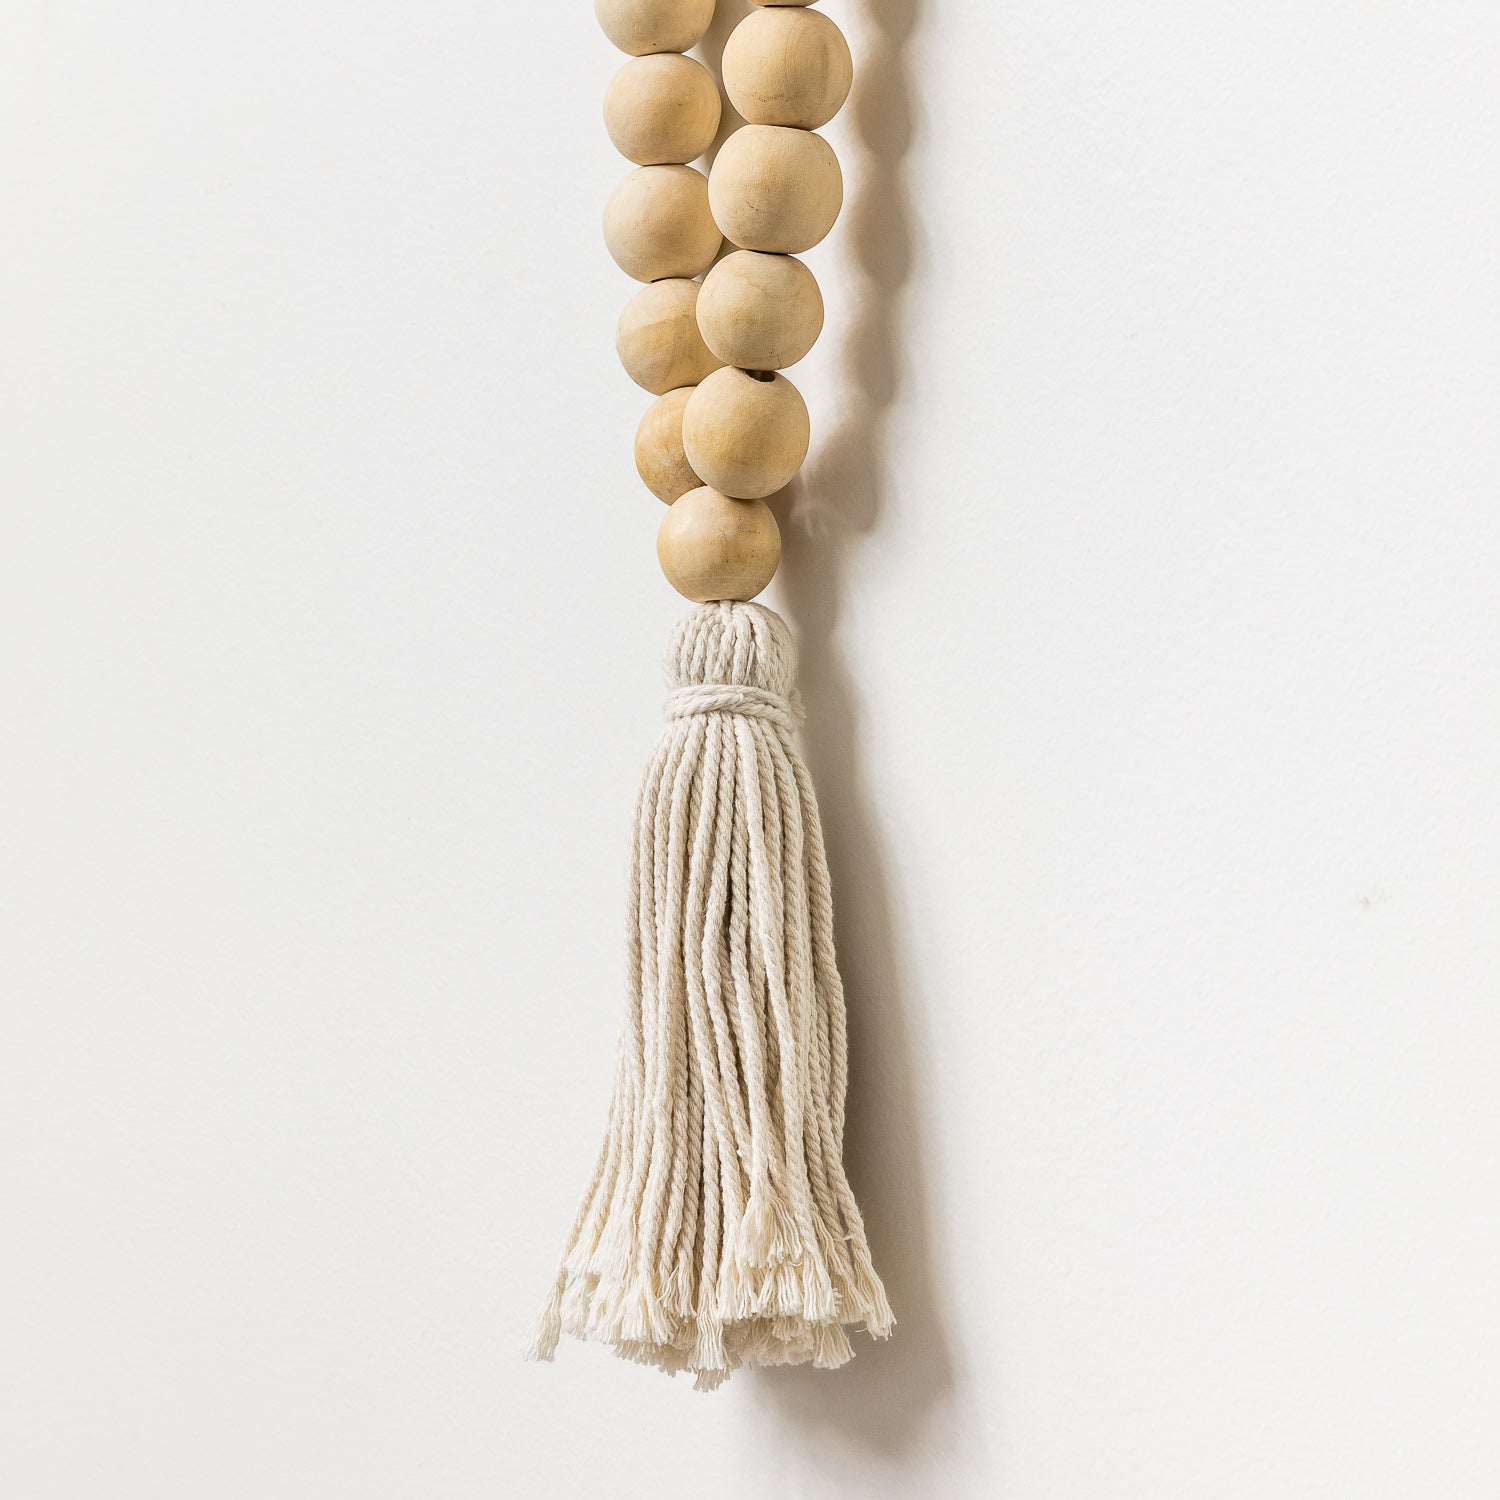 Natural Beaded Necklace With Tassel - Large